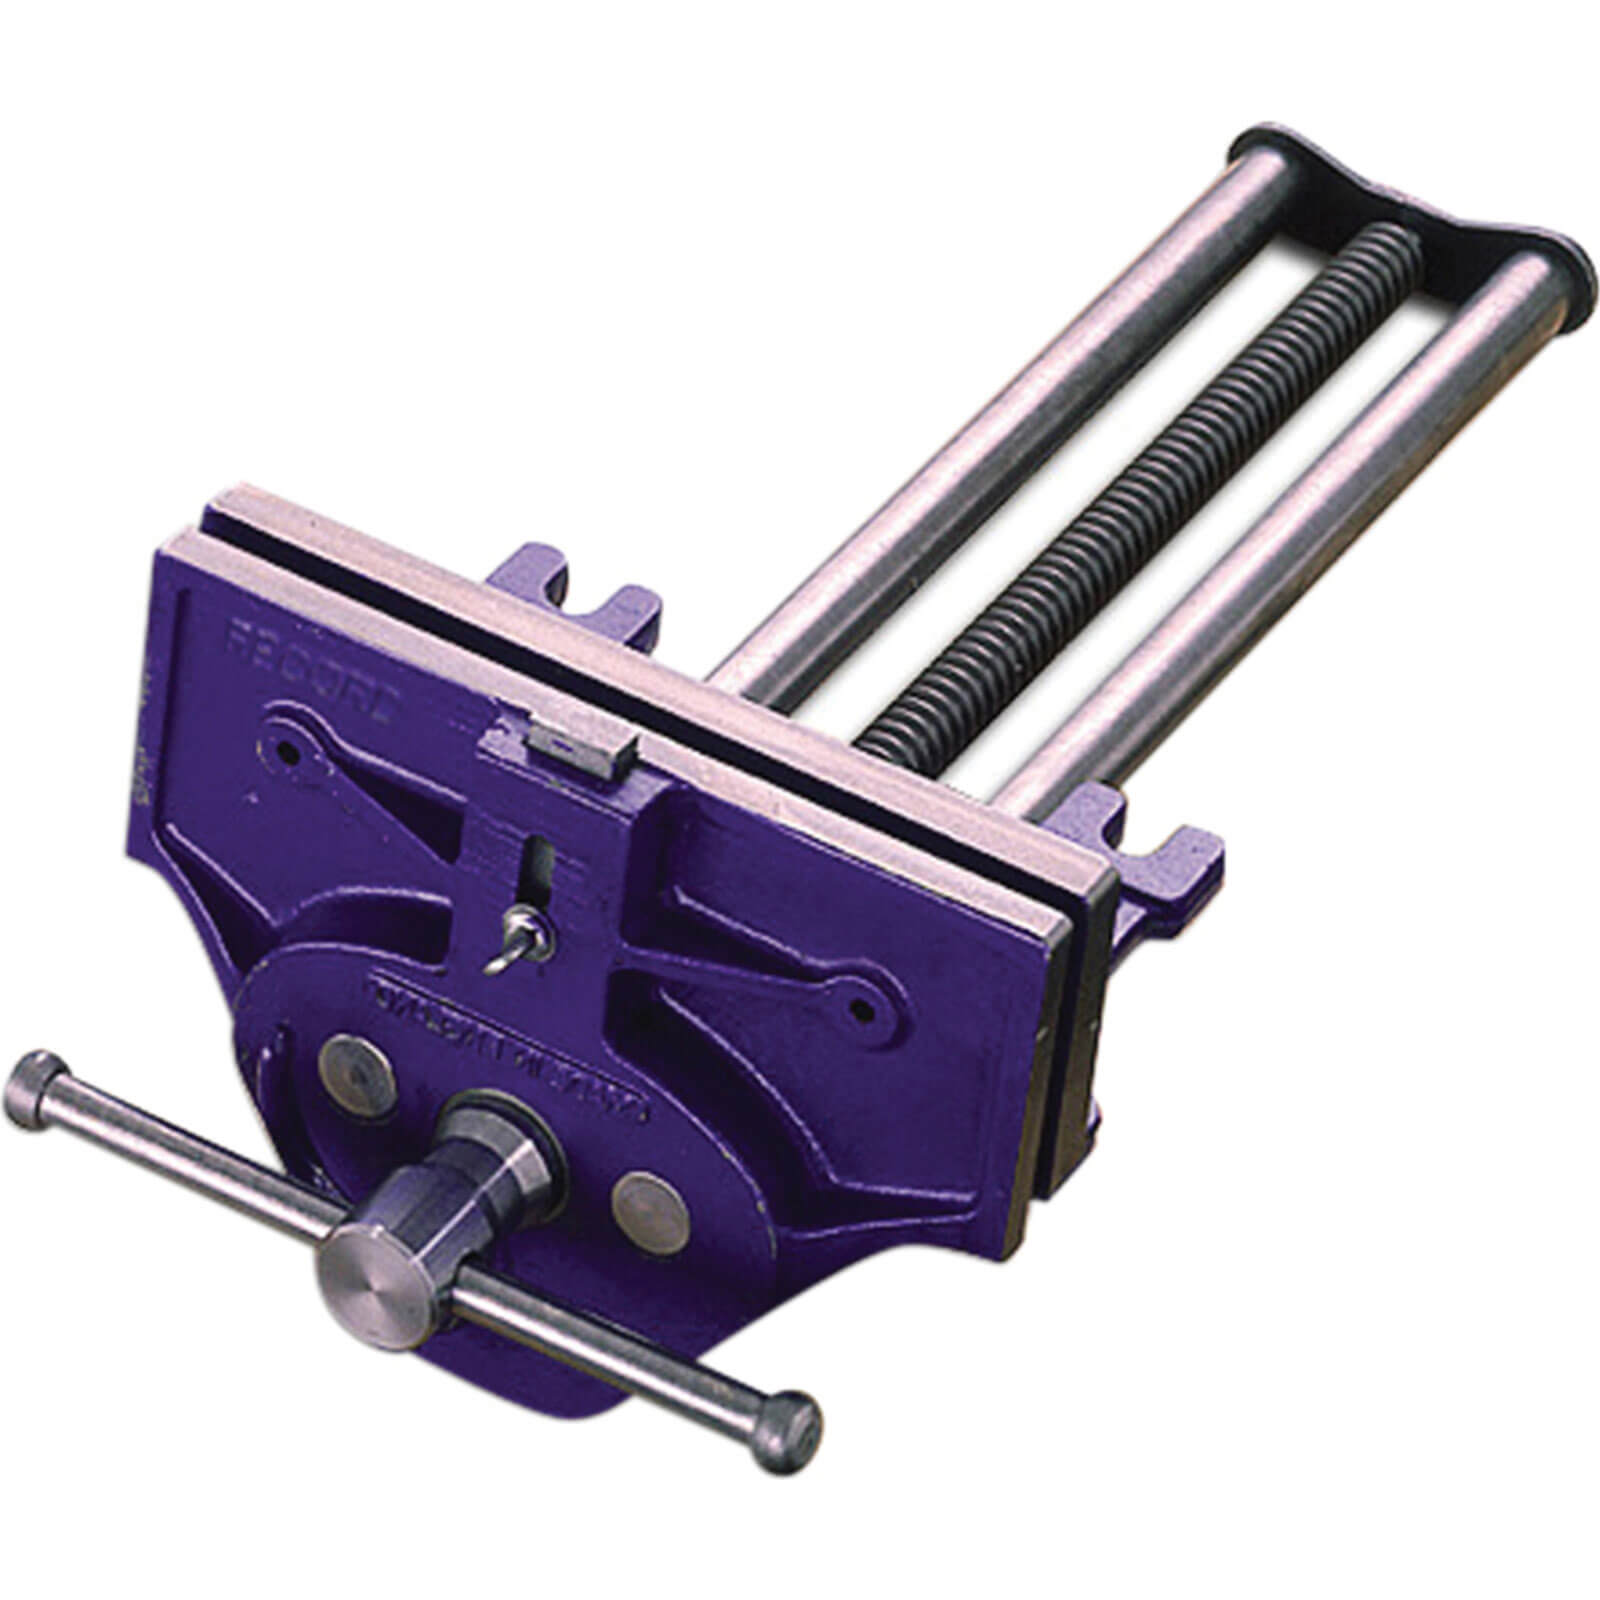 Irwin Record T52-1/2ED Professional Quick Release Plain Screw Woodworking Vice with Front Dog 9